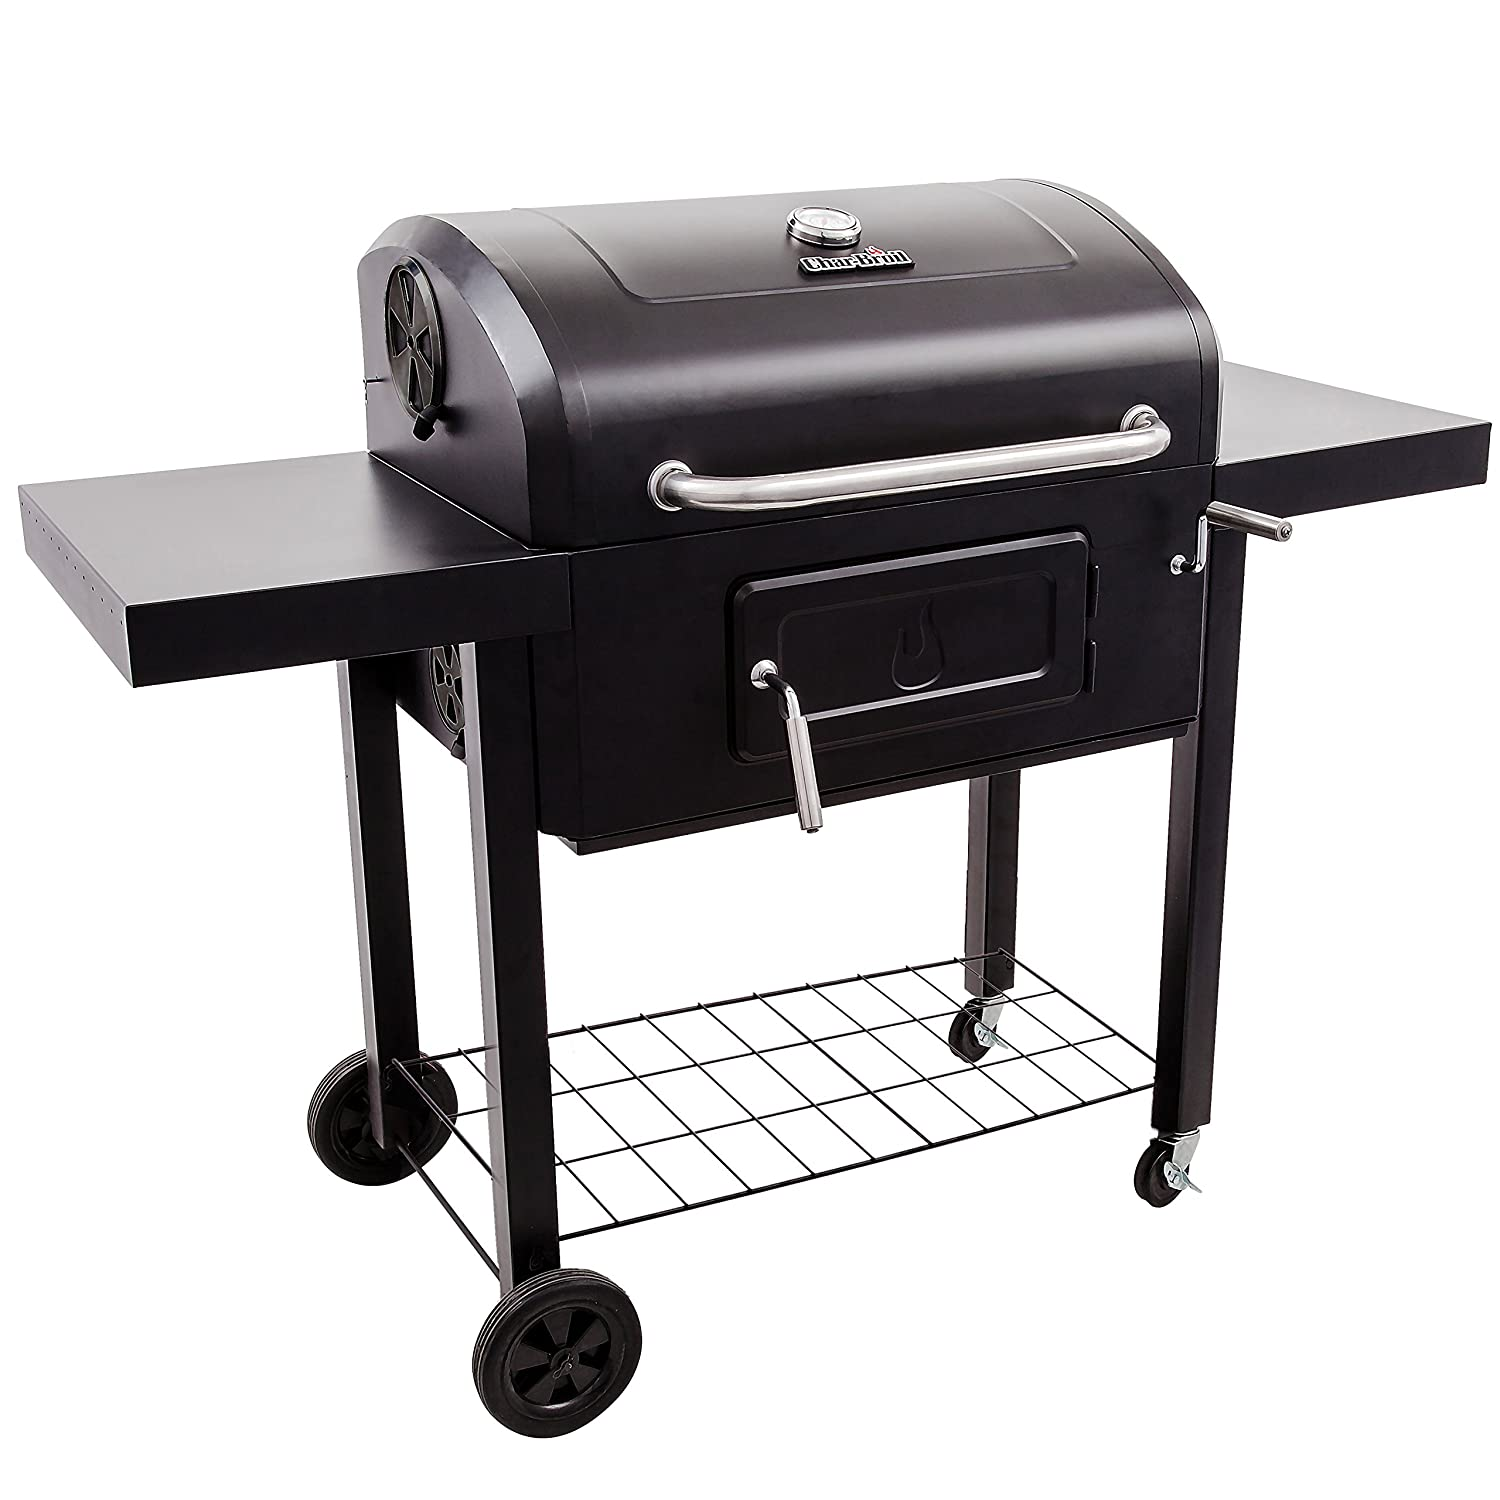 Char- Broil Holzkohlegrill, Performance Charcoal 3500, schwarz, 146,3 x 71,6 x 114,8 cm